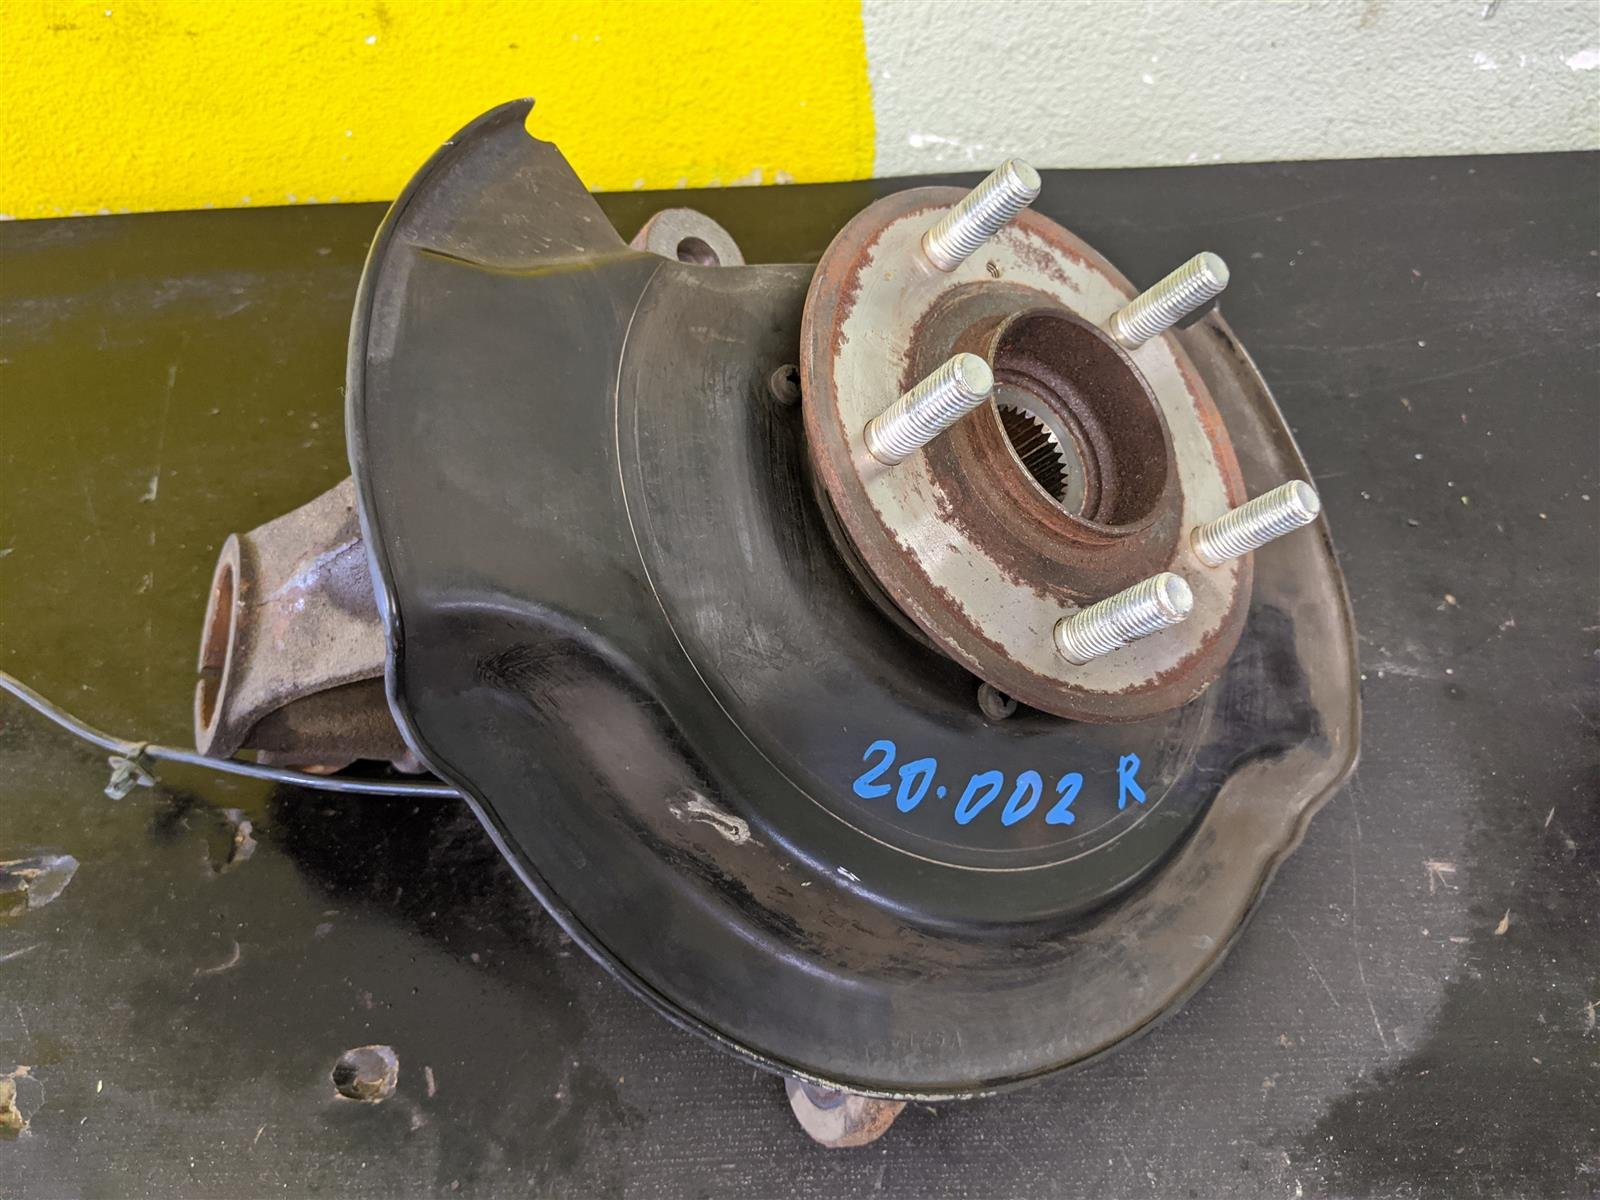 2016 Acura MDX Front Passenger Spindle Knuckle Replacement